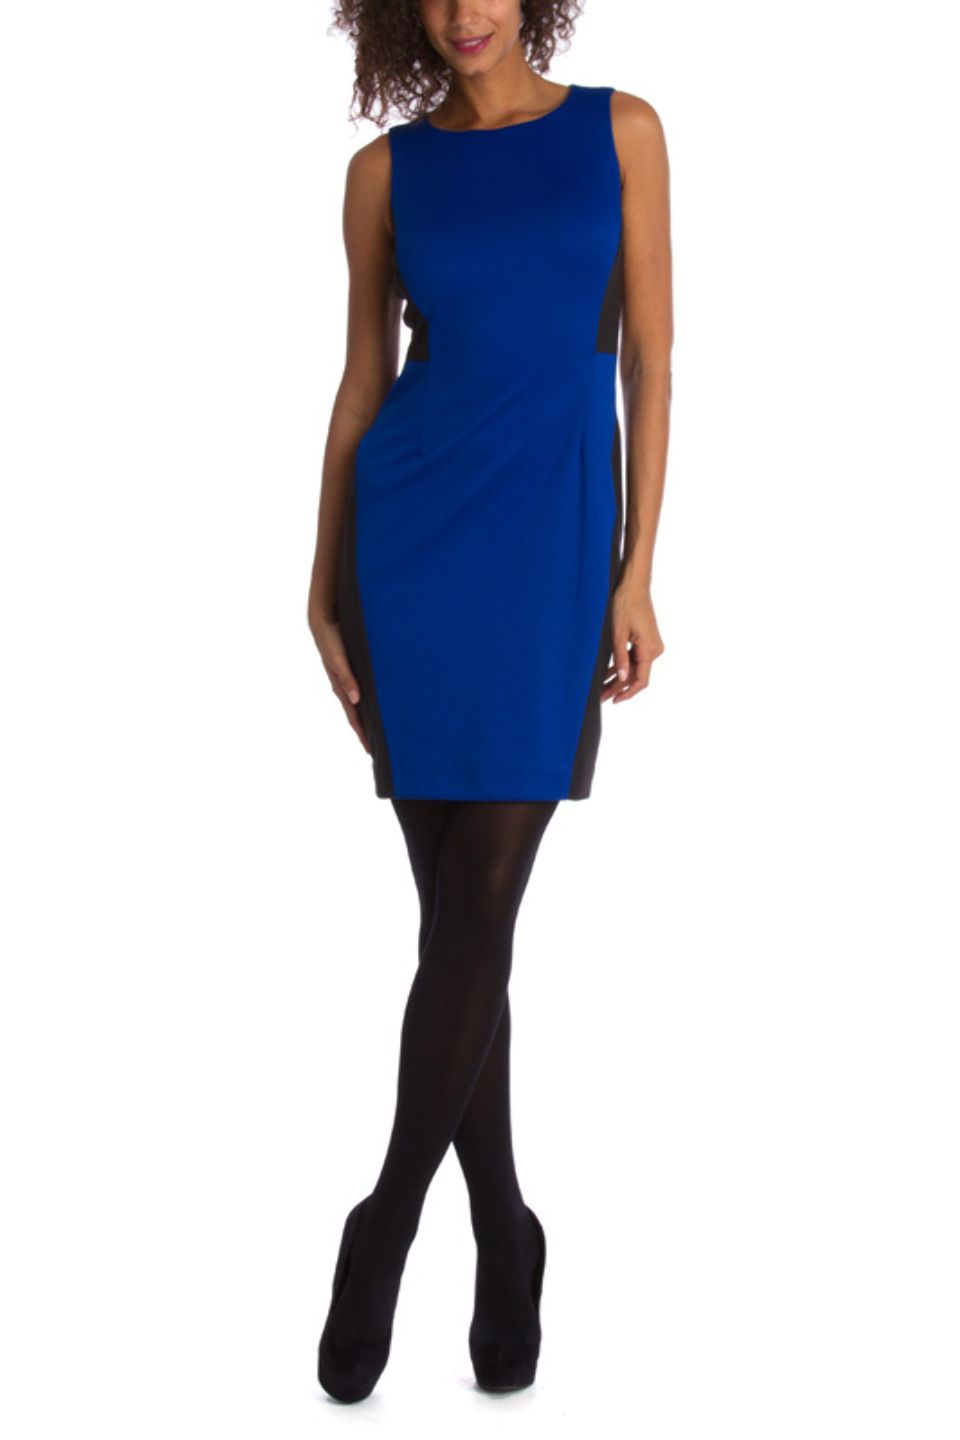 Royal blue dress with black tights good to know mat3rial gurrll royal blue dress with black tights good to know ombrellifo Gallery